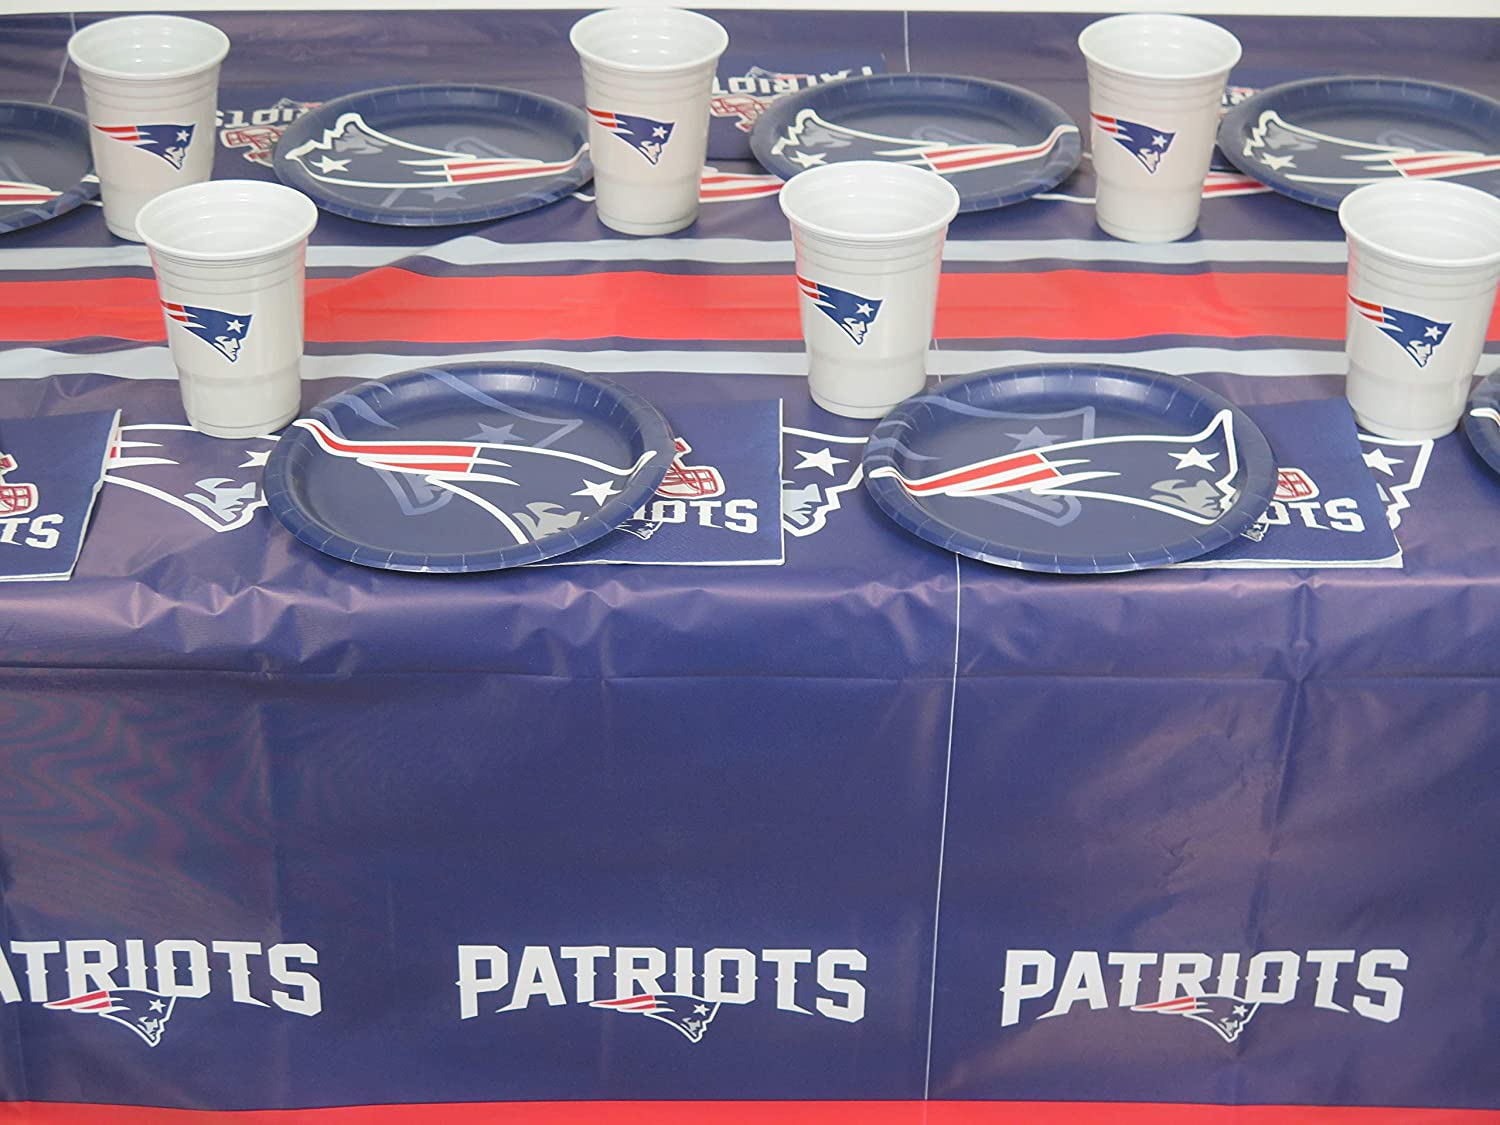 New England Patriots Super Bowl 98 pieces jumbo Party set FRE SATURDAY DELIVERY. Includes 2 TableclothS,32 DINNER plateS, 32 napkins, and 32 jumbo plastic cups.